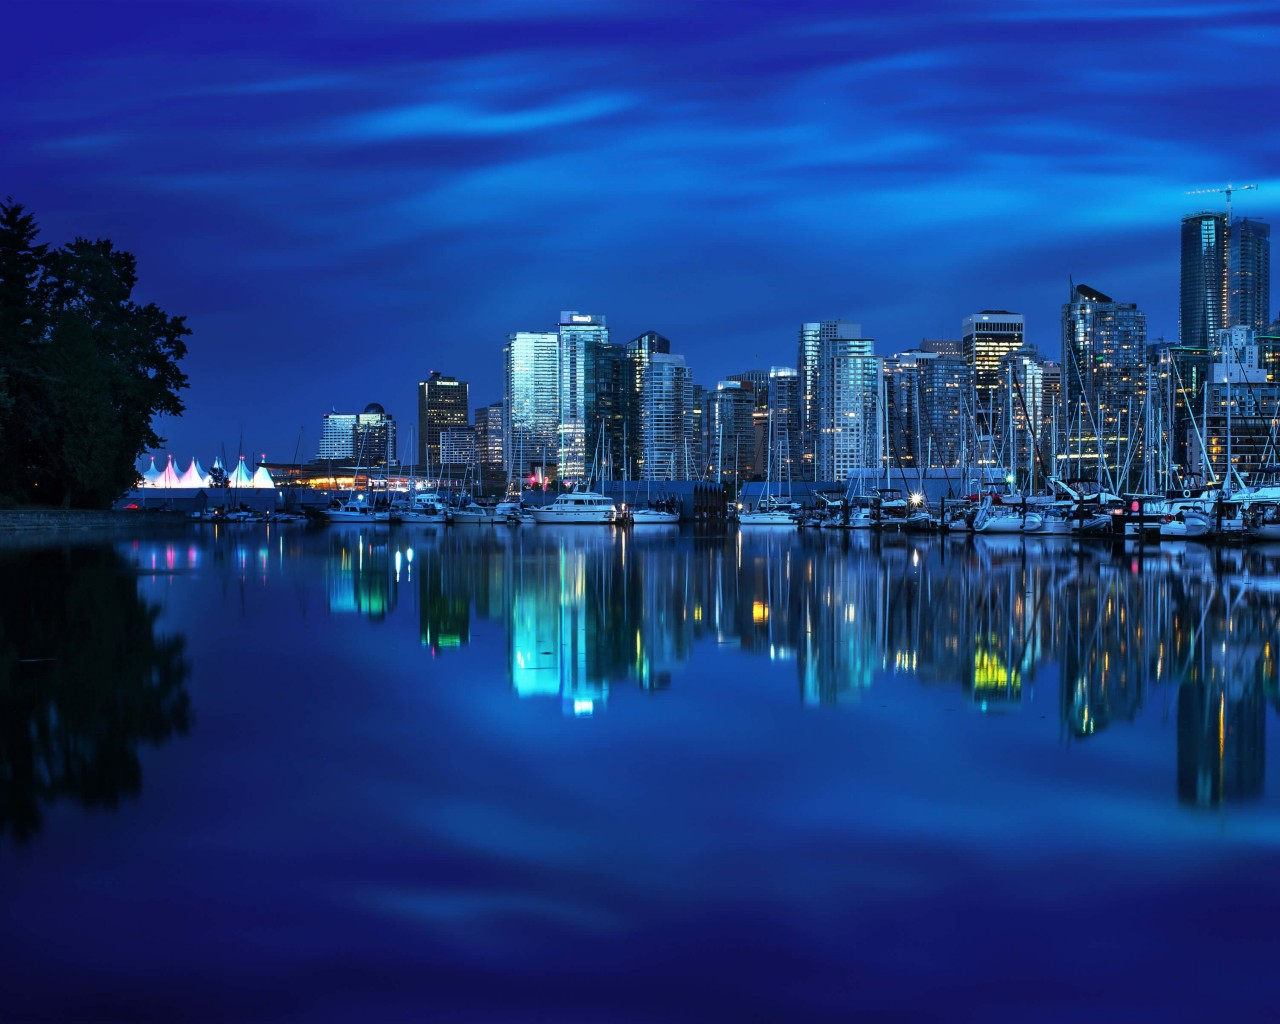 Coal Harbour Marina, Vancouver Wallpaper for Desktop 1280x1024